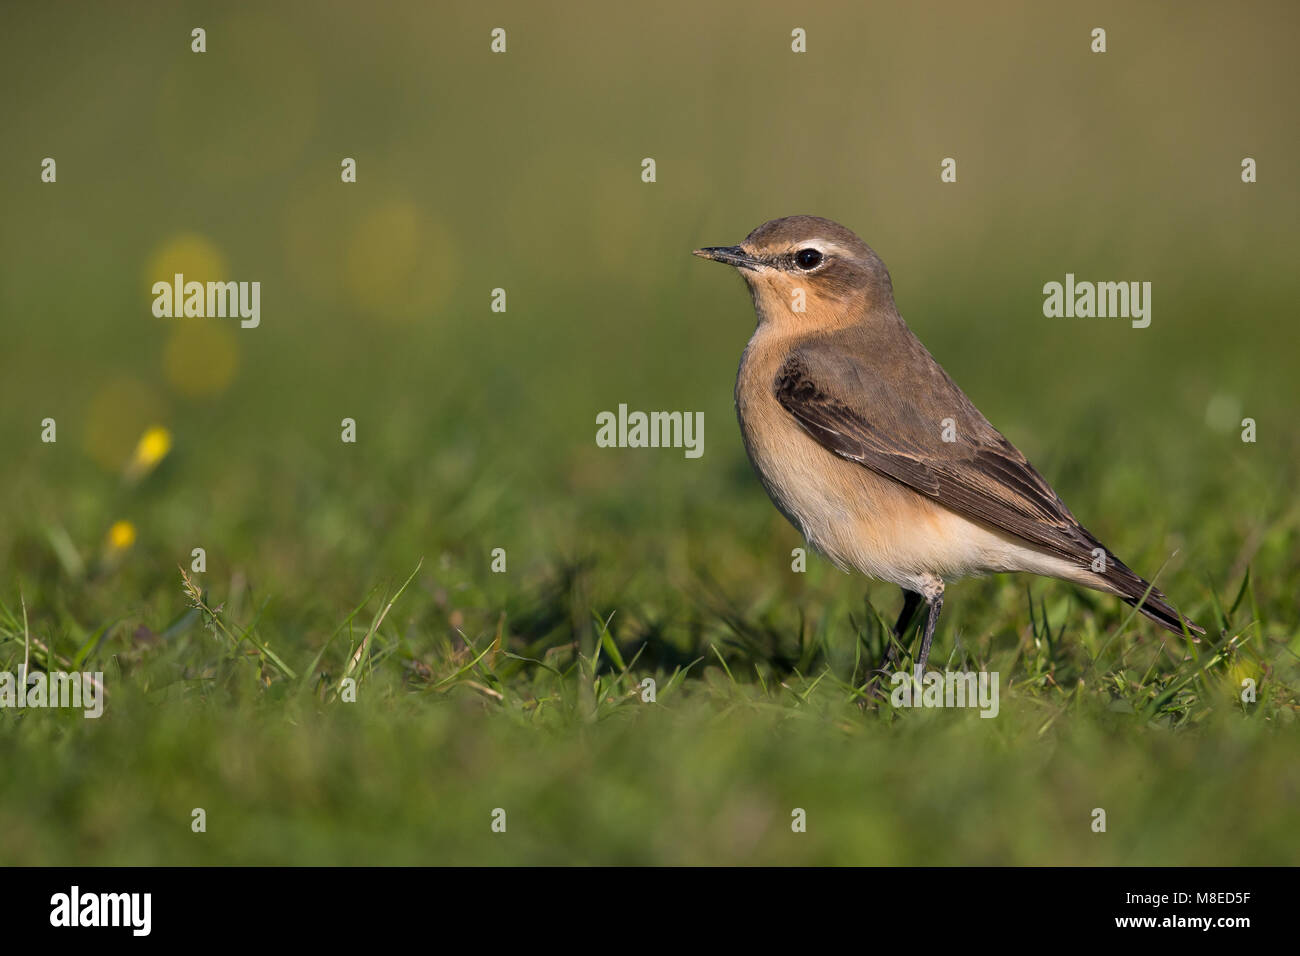 Vrouwtje Tapuit, Female Northern Wheatear Stock Photo